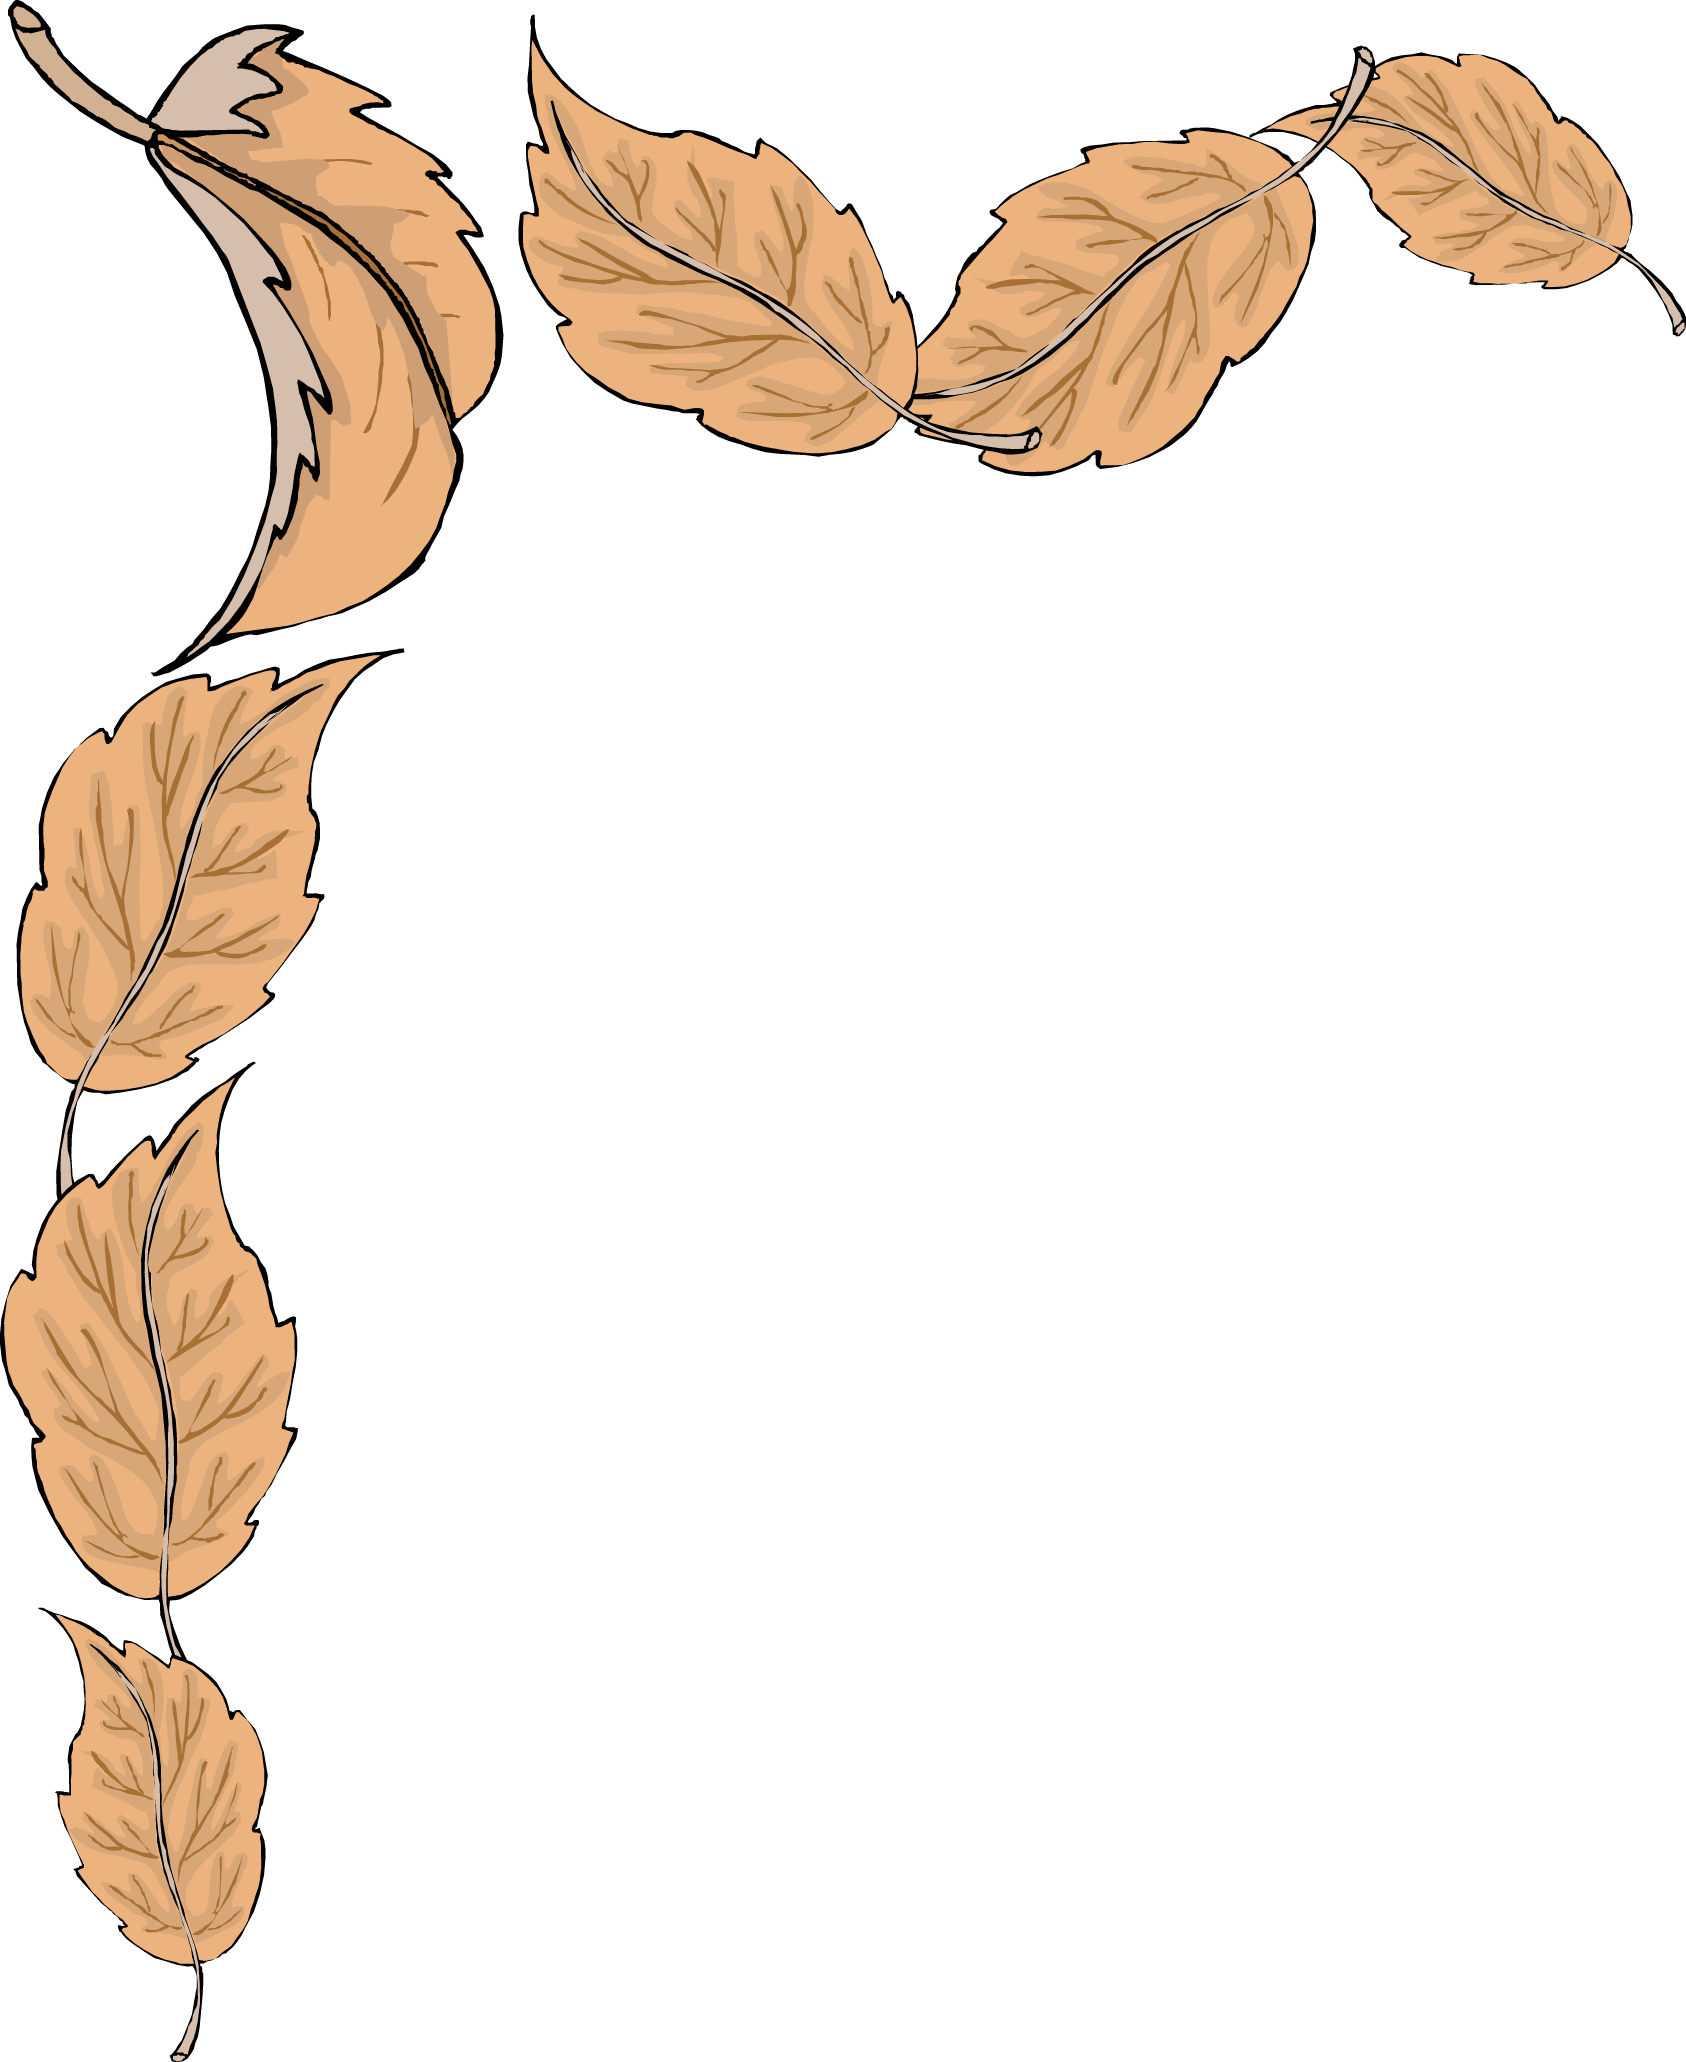 Borders drawing nature. Fall leaves border clipart